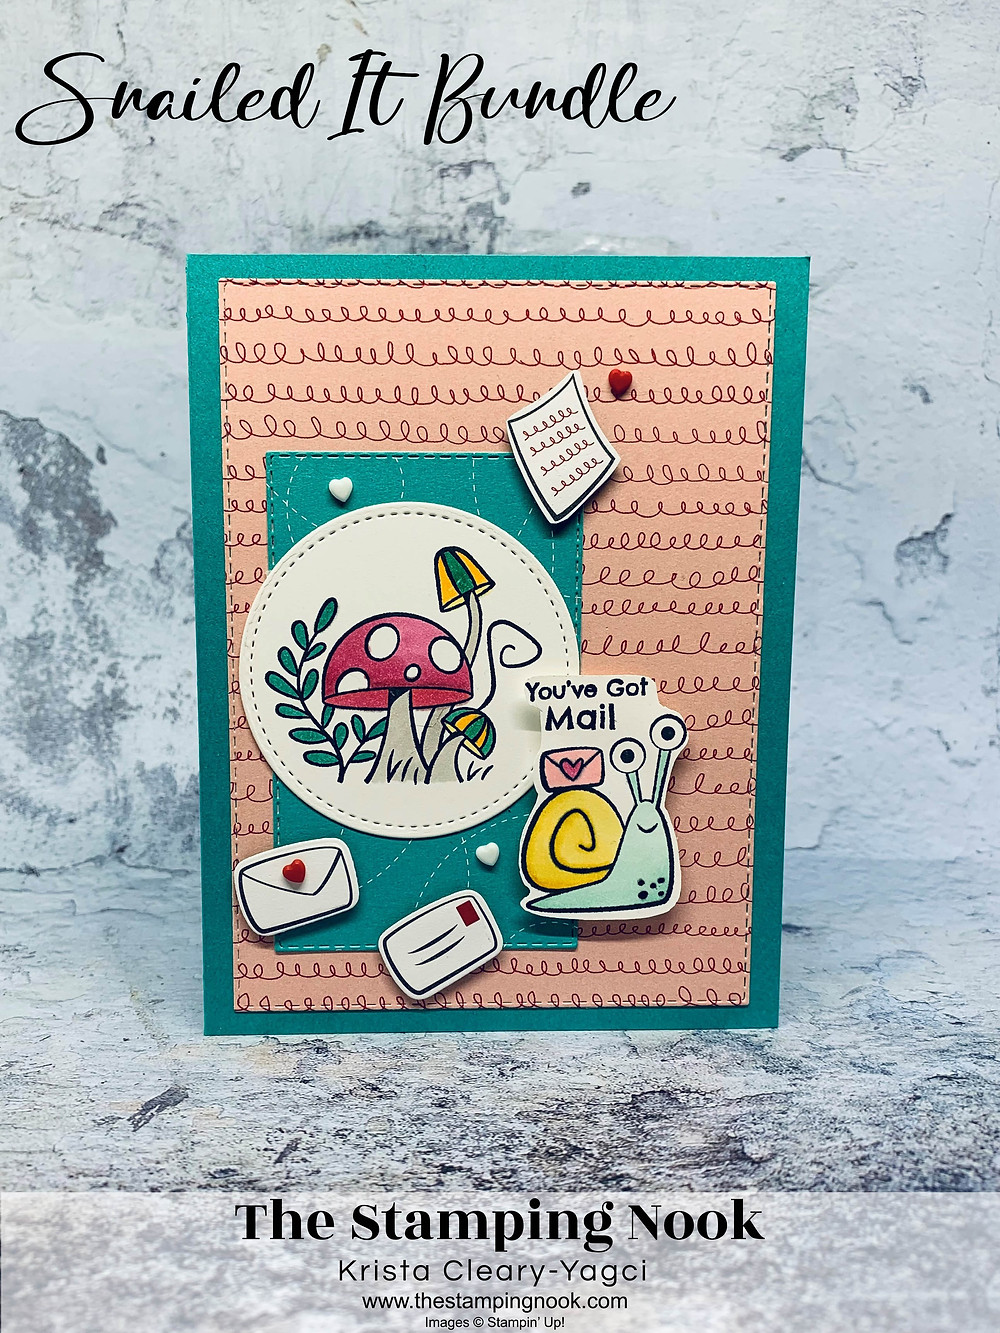 stampin-up-snailed-it-youve-got-mail-card-the-stamping-nook-krista-cleary-yagci-5